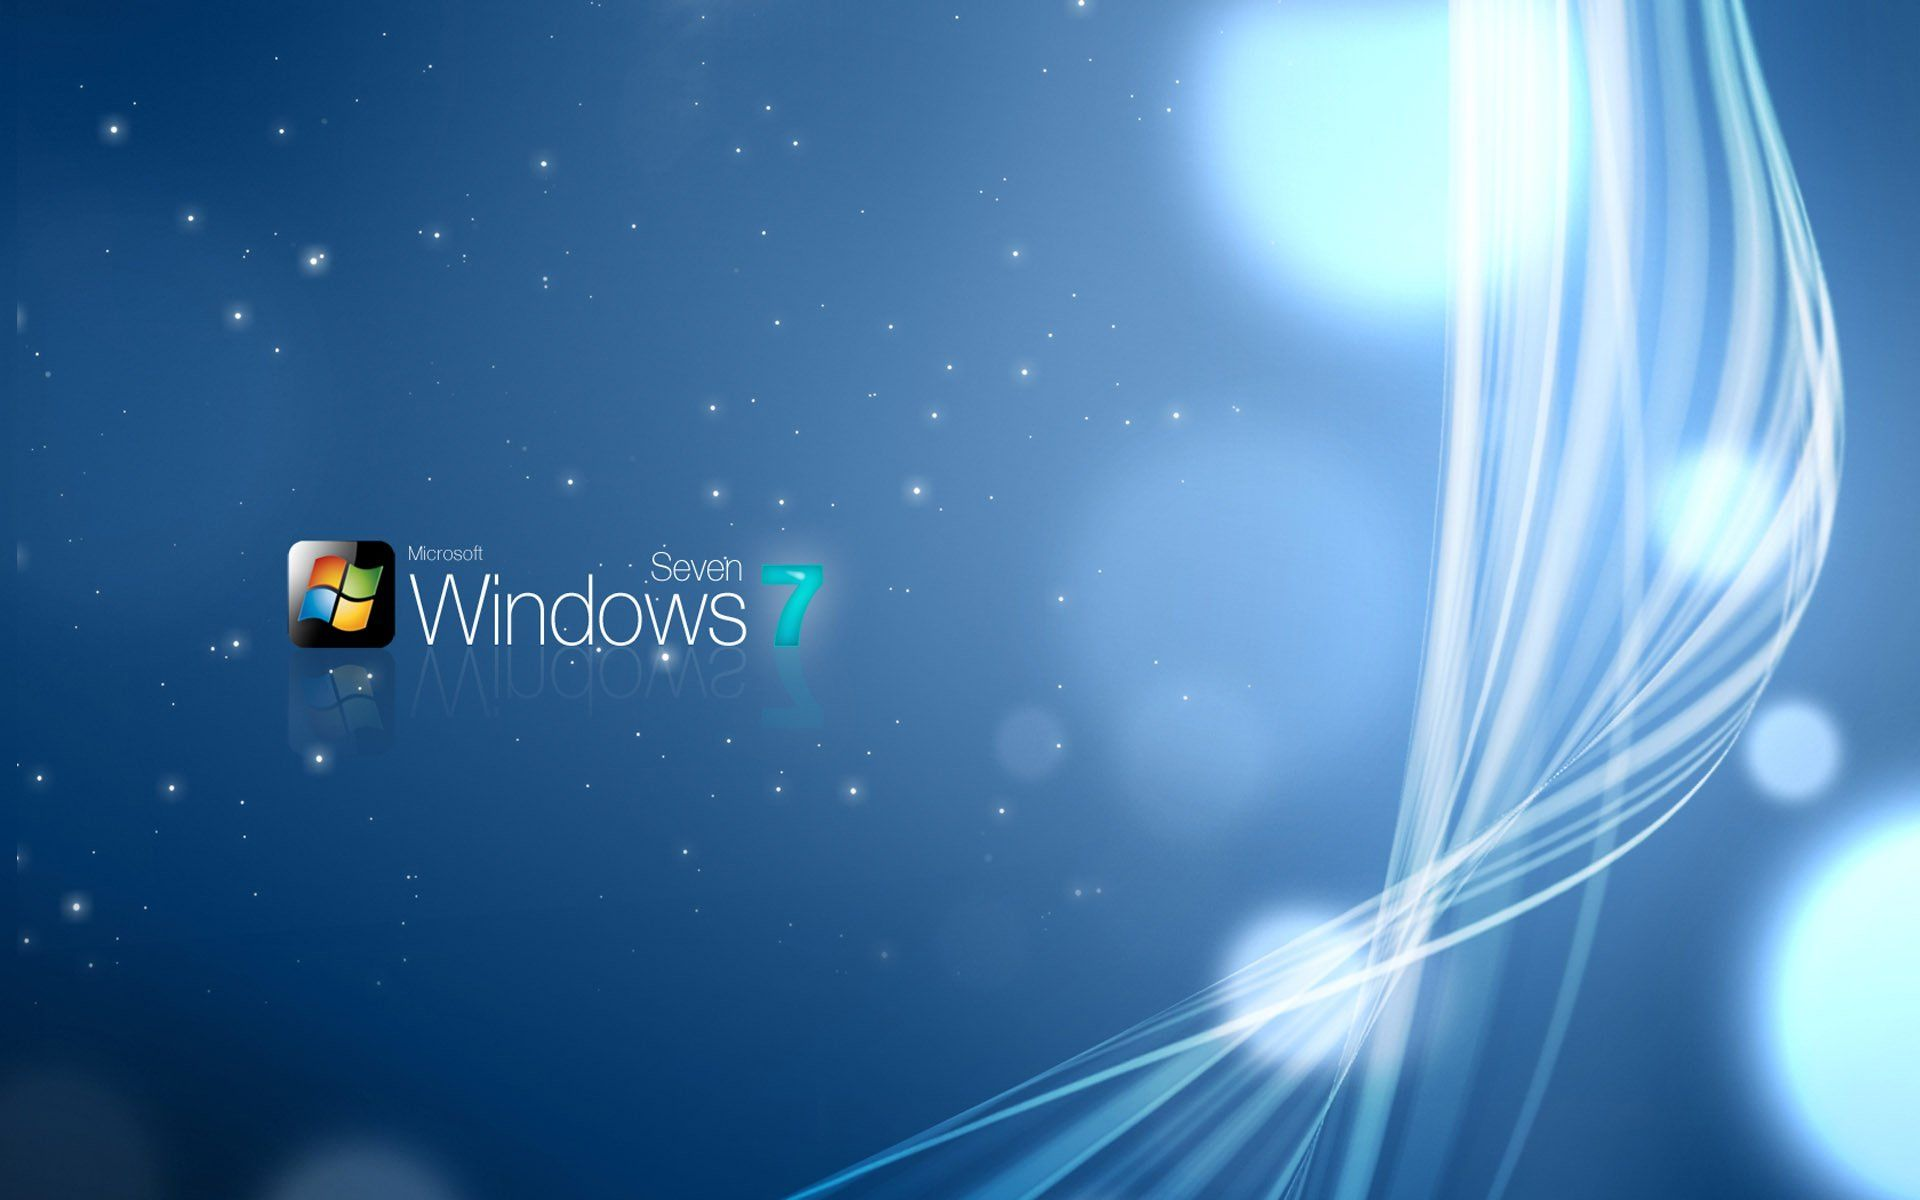 Windows 7 64 Bit Wallpaper Bewegen Wallpaper Hoch Aufgelöste Wallpapers Desktop Hintergrundbilder Windows